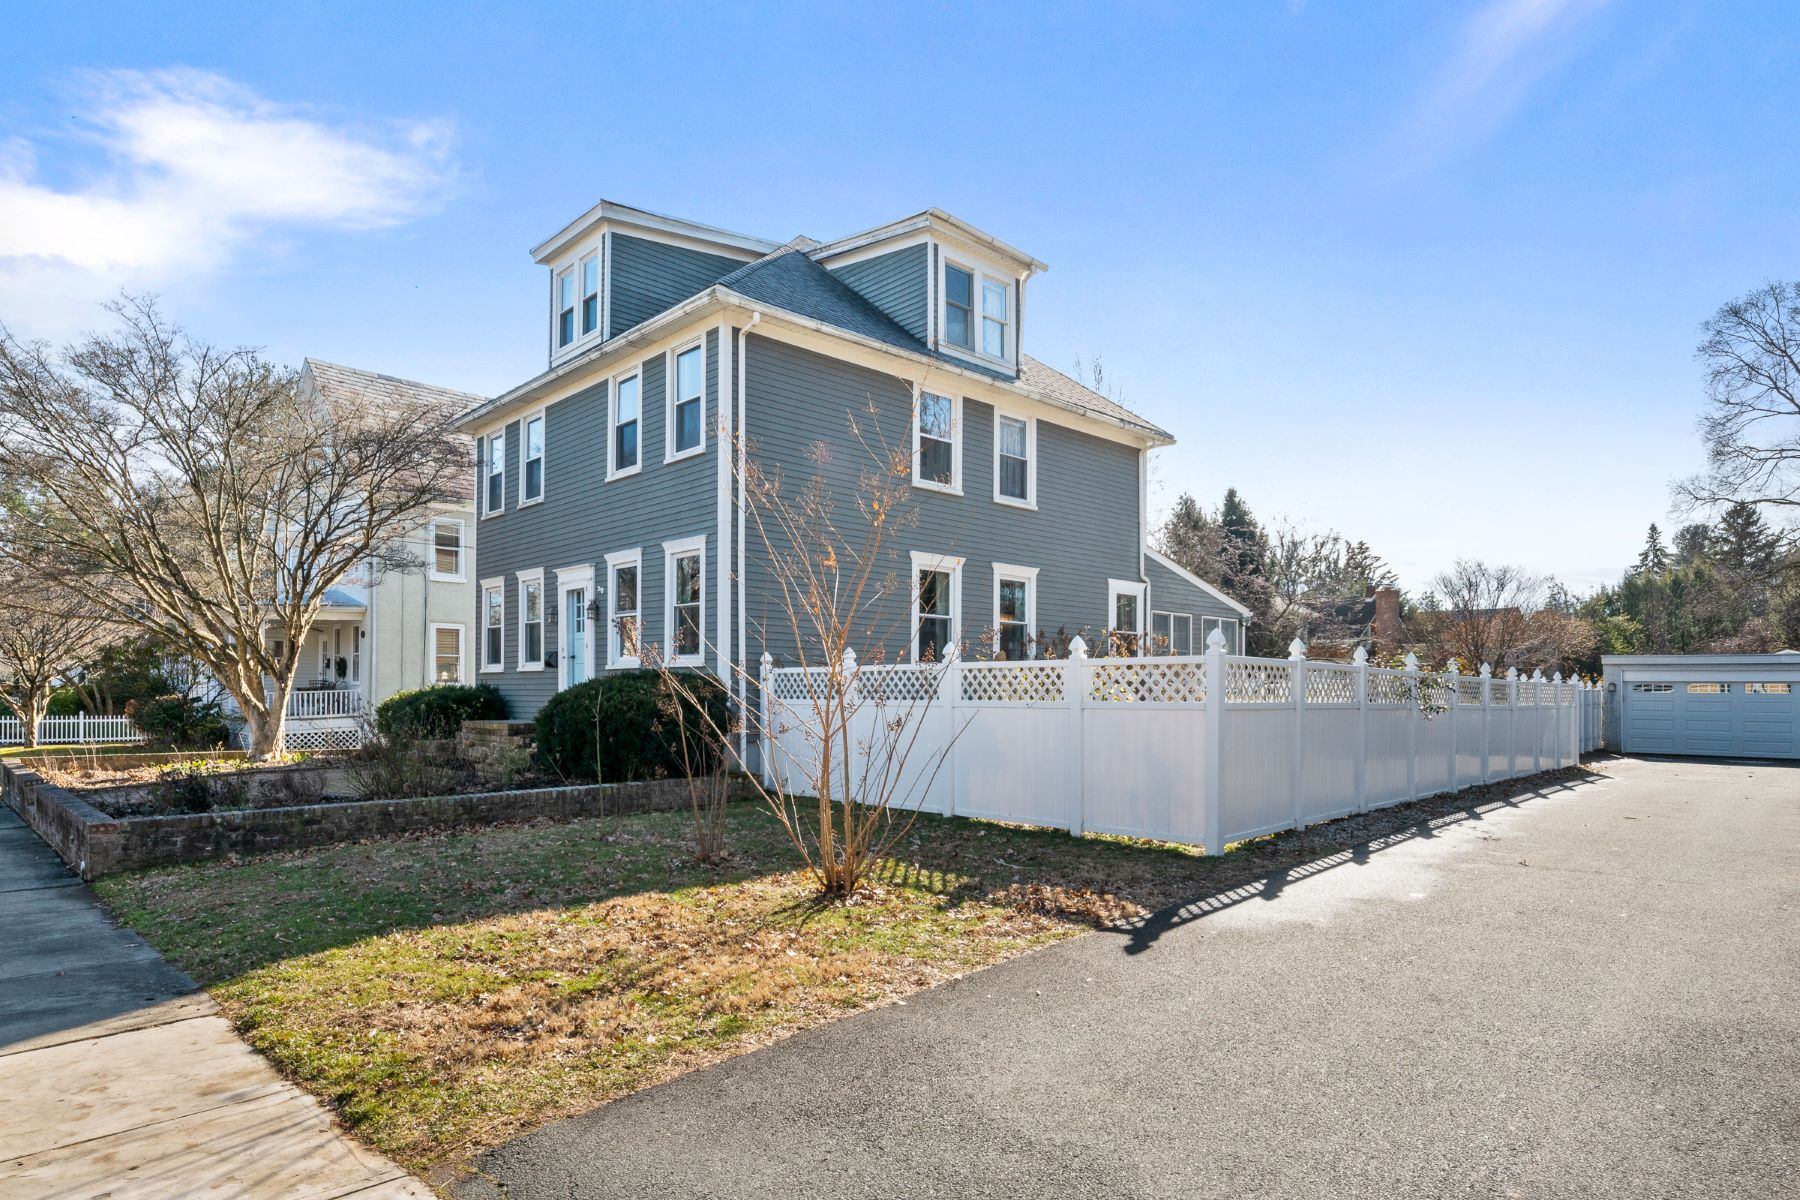 Additional photo for property listing at Infused with Character and Charm 21 Craven Lane, Lawrenceville, New Jersey 08648 United States